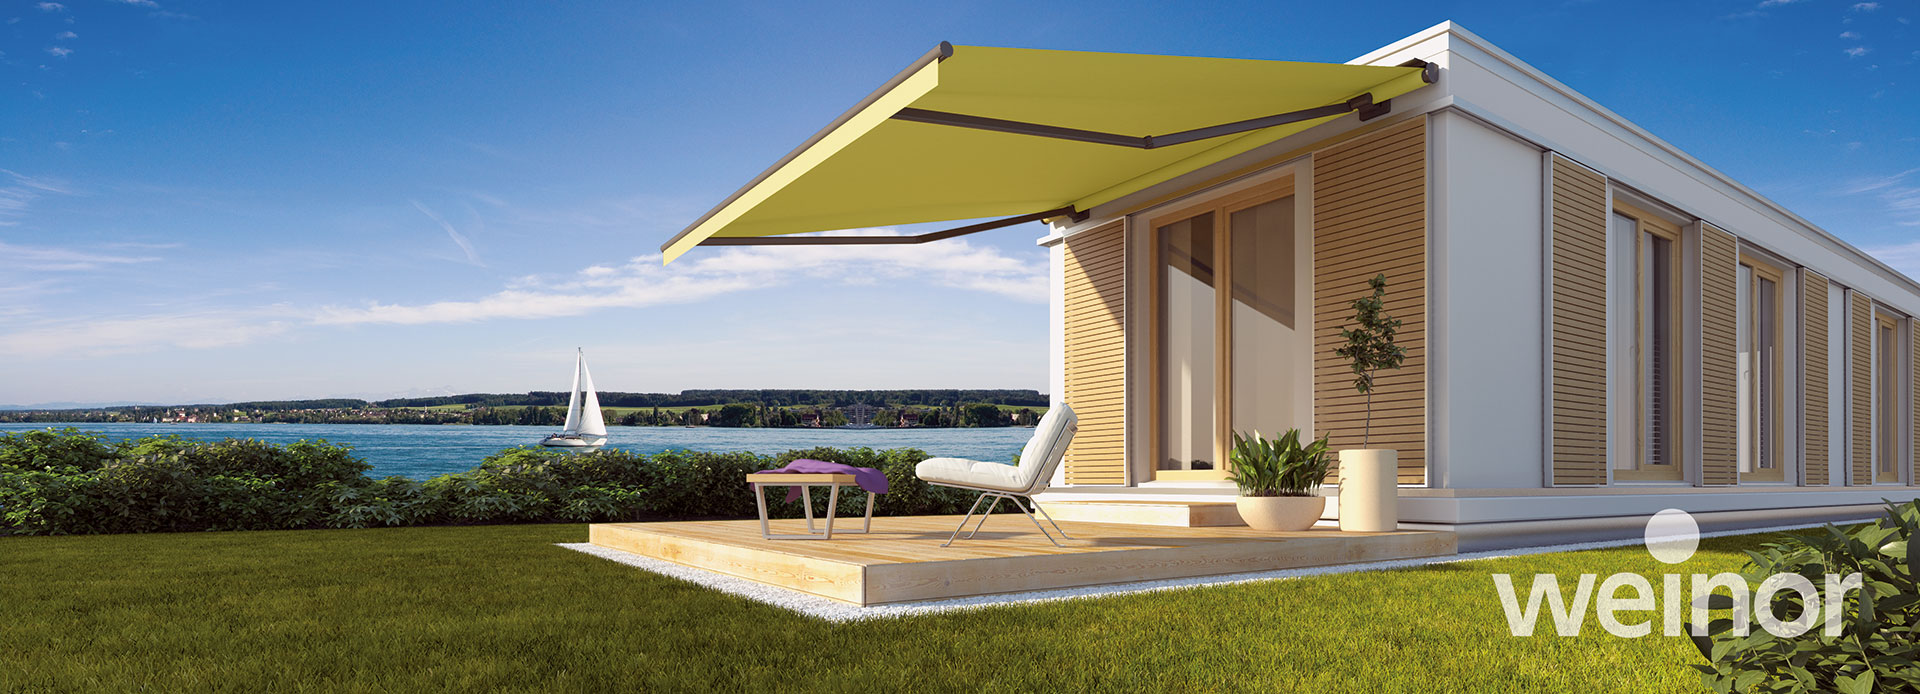 Ozshade Folding Arm Awnings 3